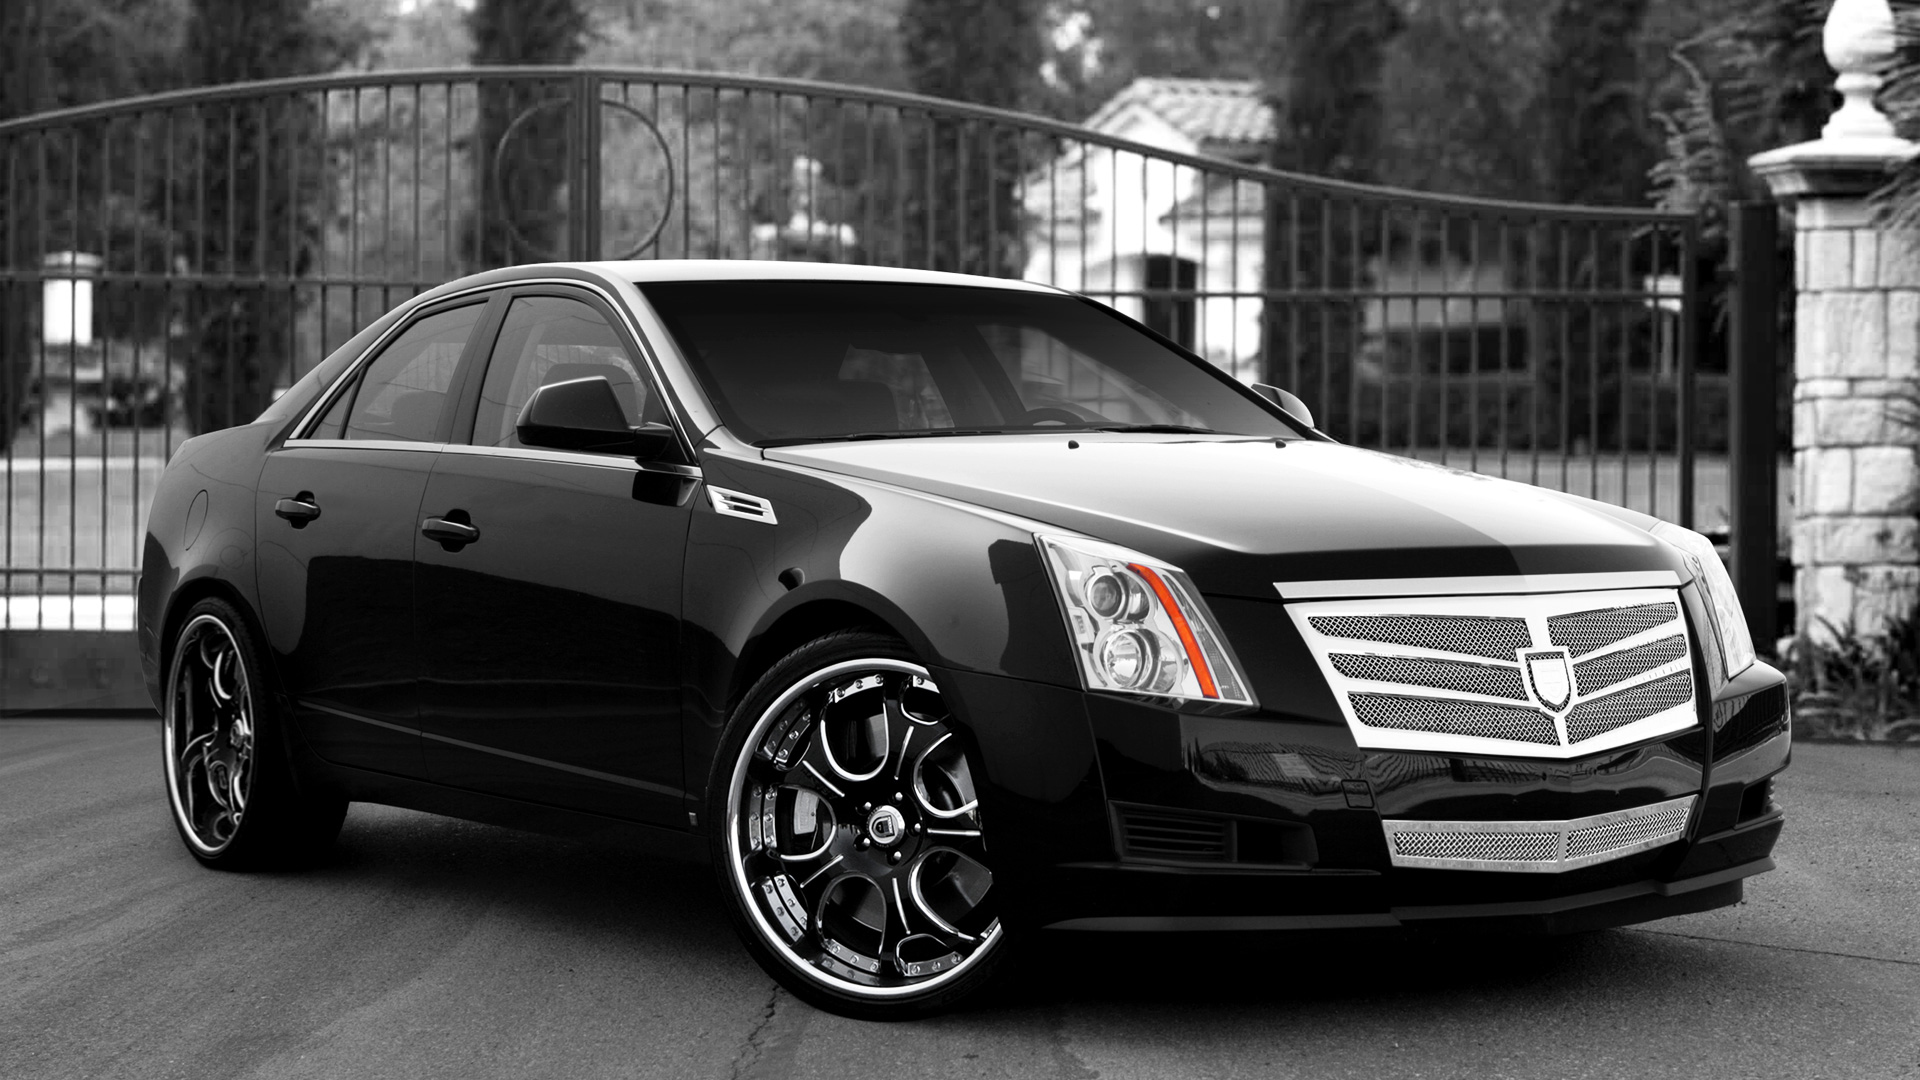 Lowrider Wallpaper Iphone Cadillac Wallpaper Wallpapers High Quality Download Free